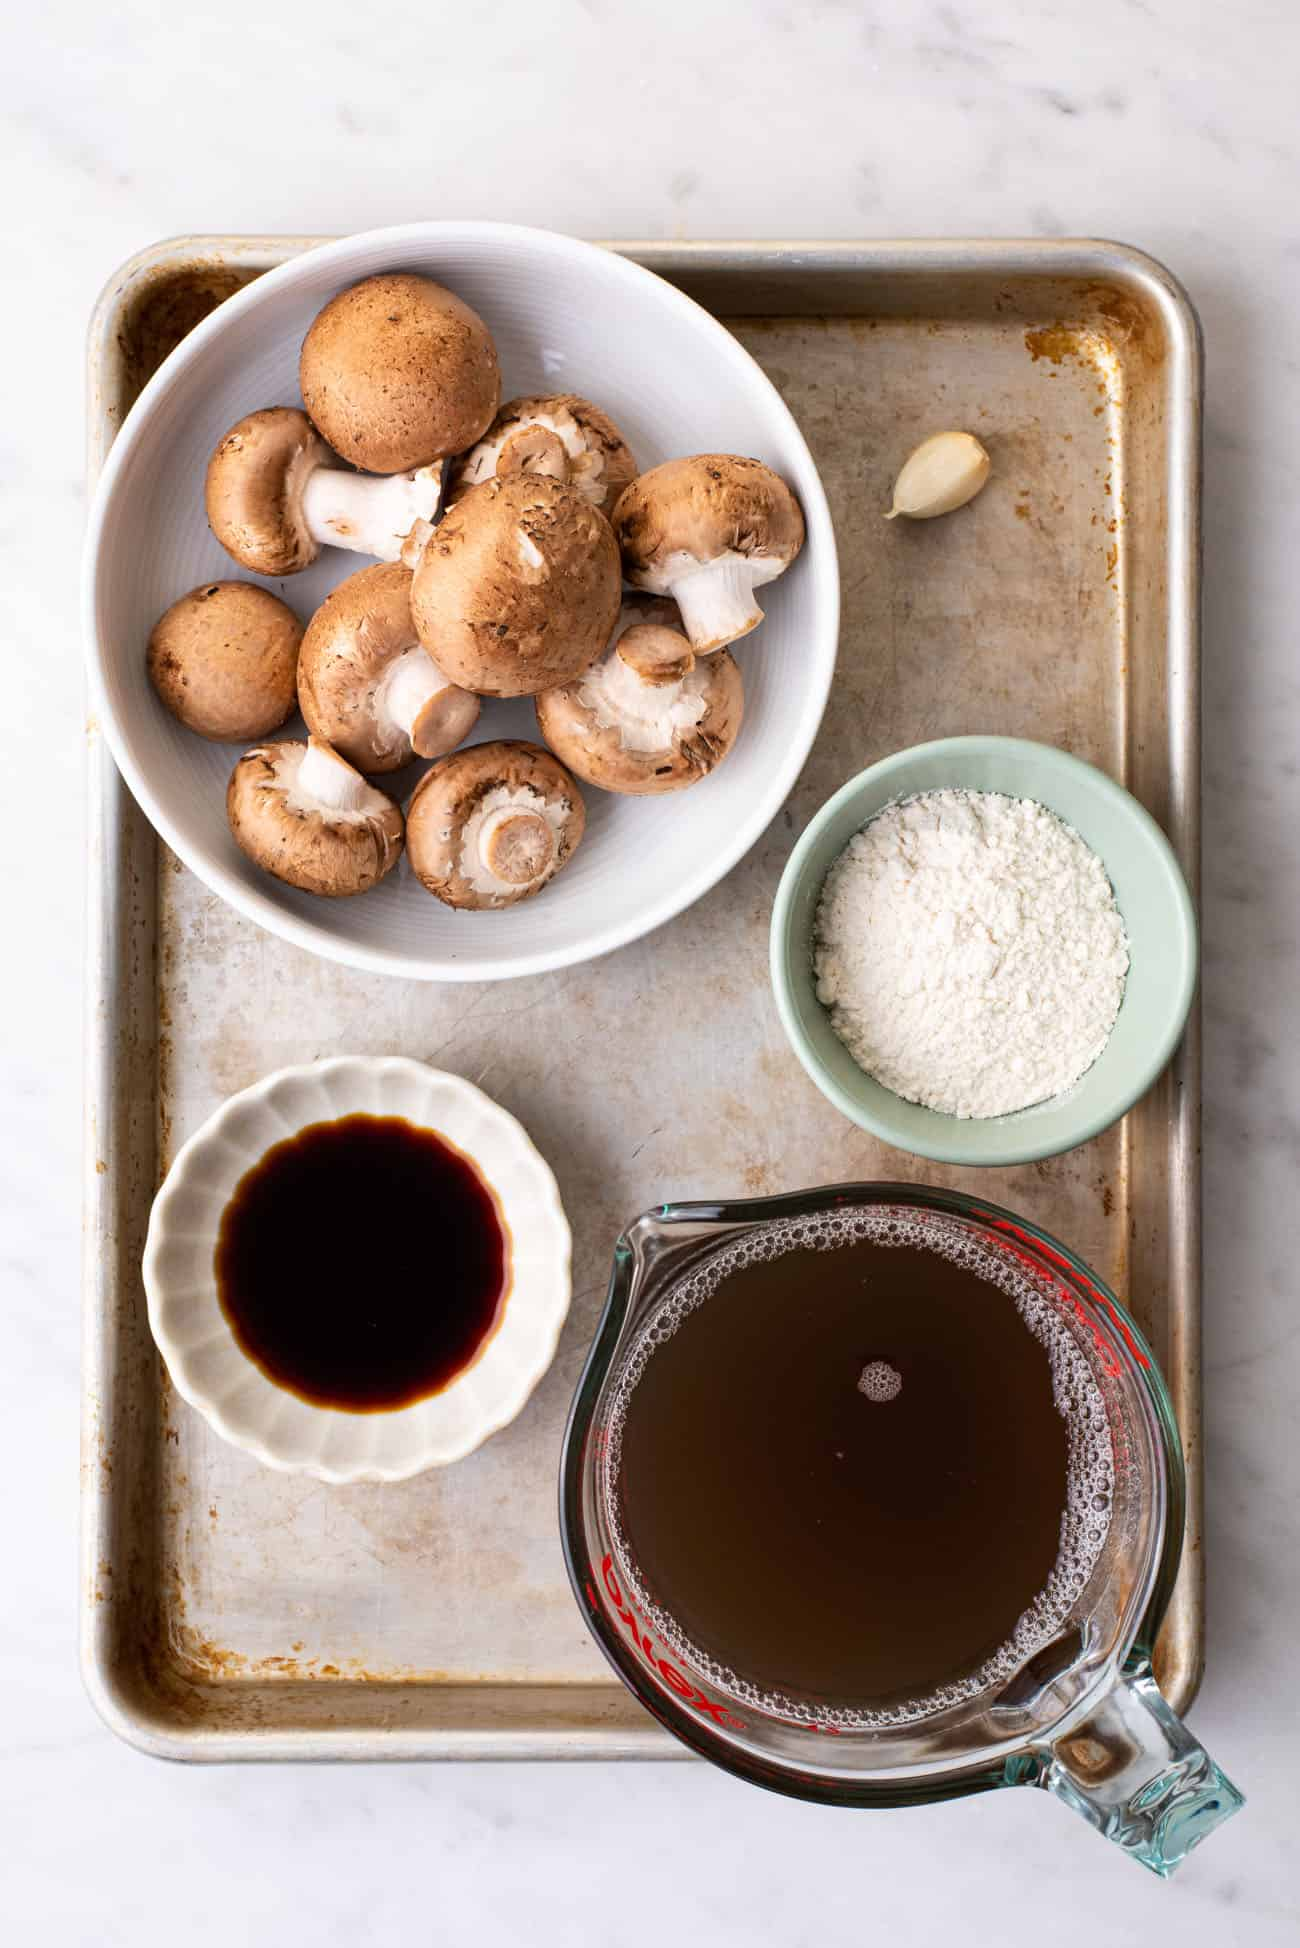 Ingredients to make vegan mushroom gravy laid out on marble table: mushrooms, flour, soy sauce, and broth